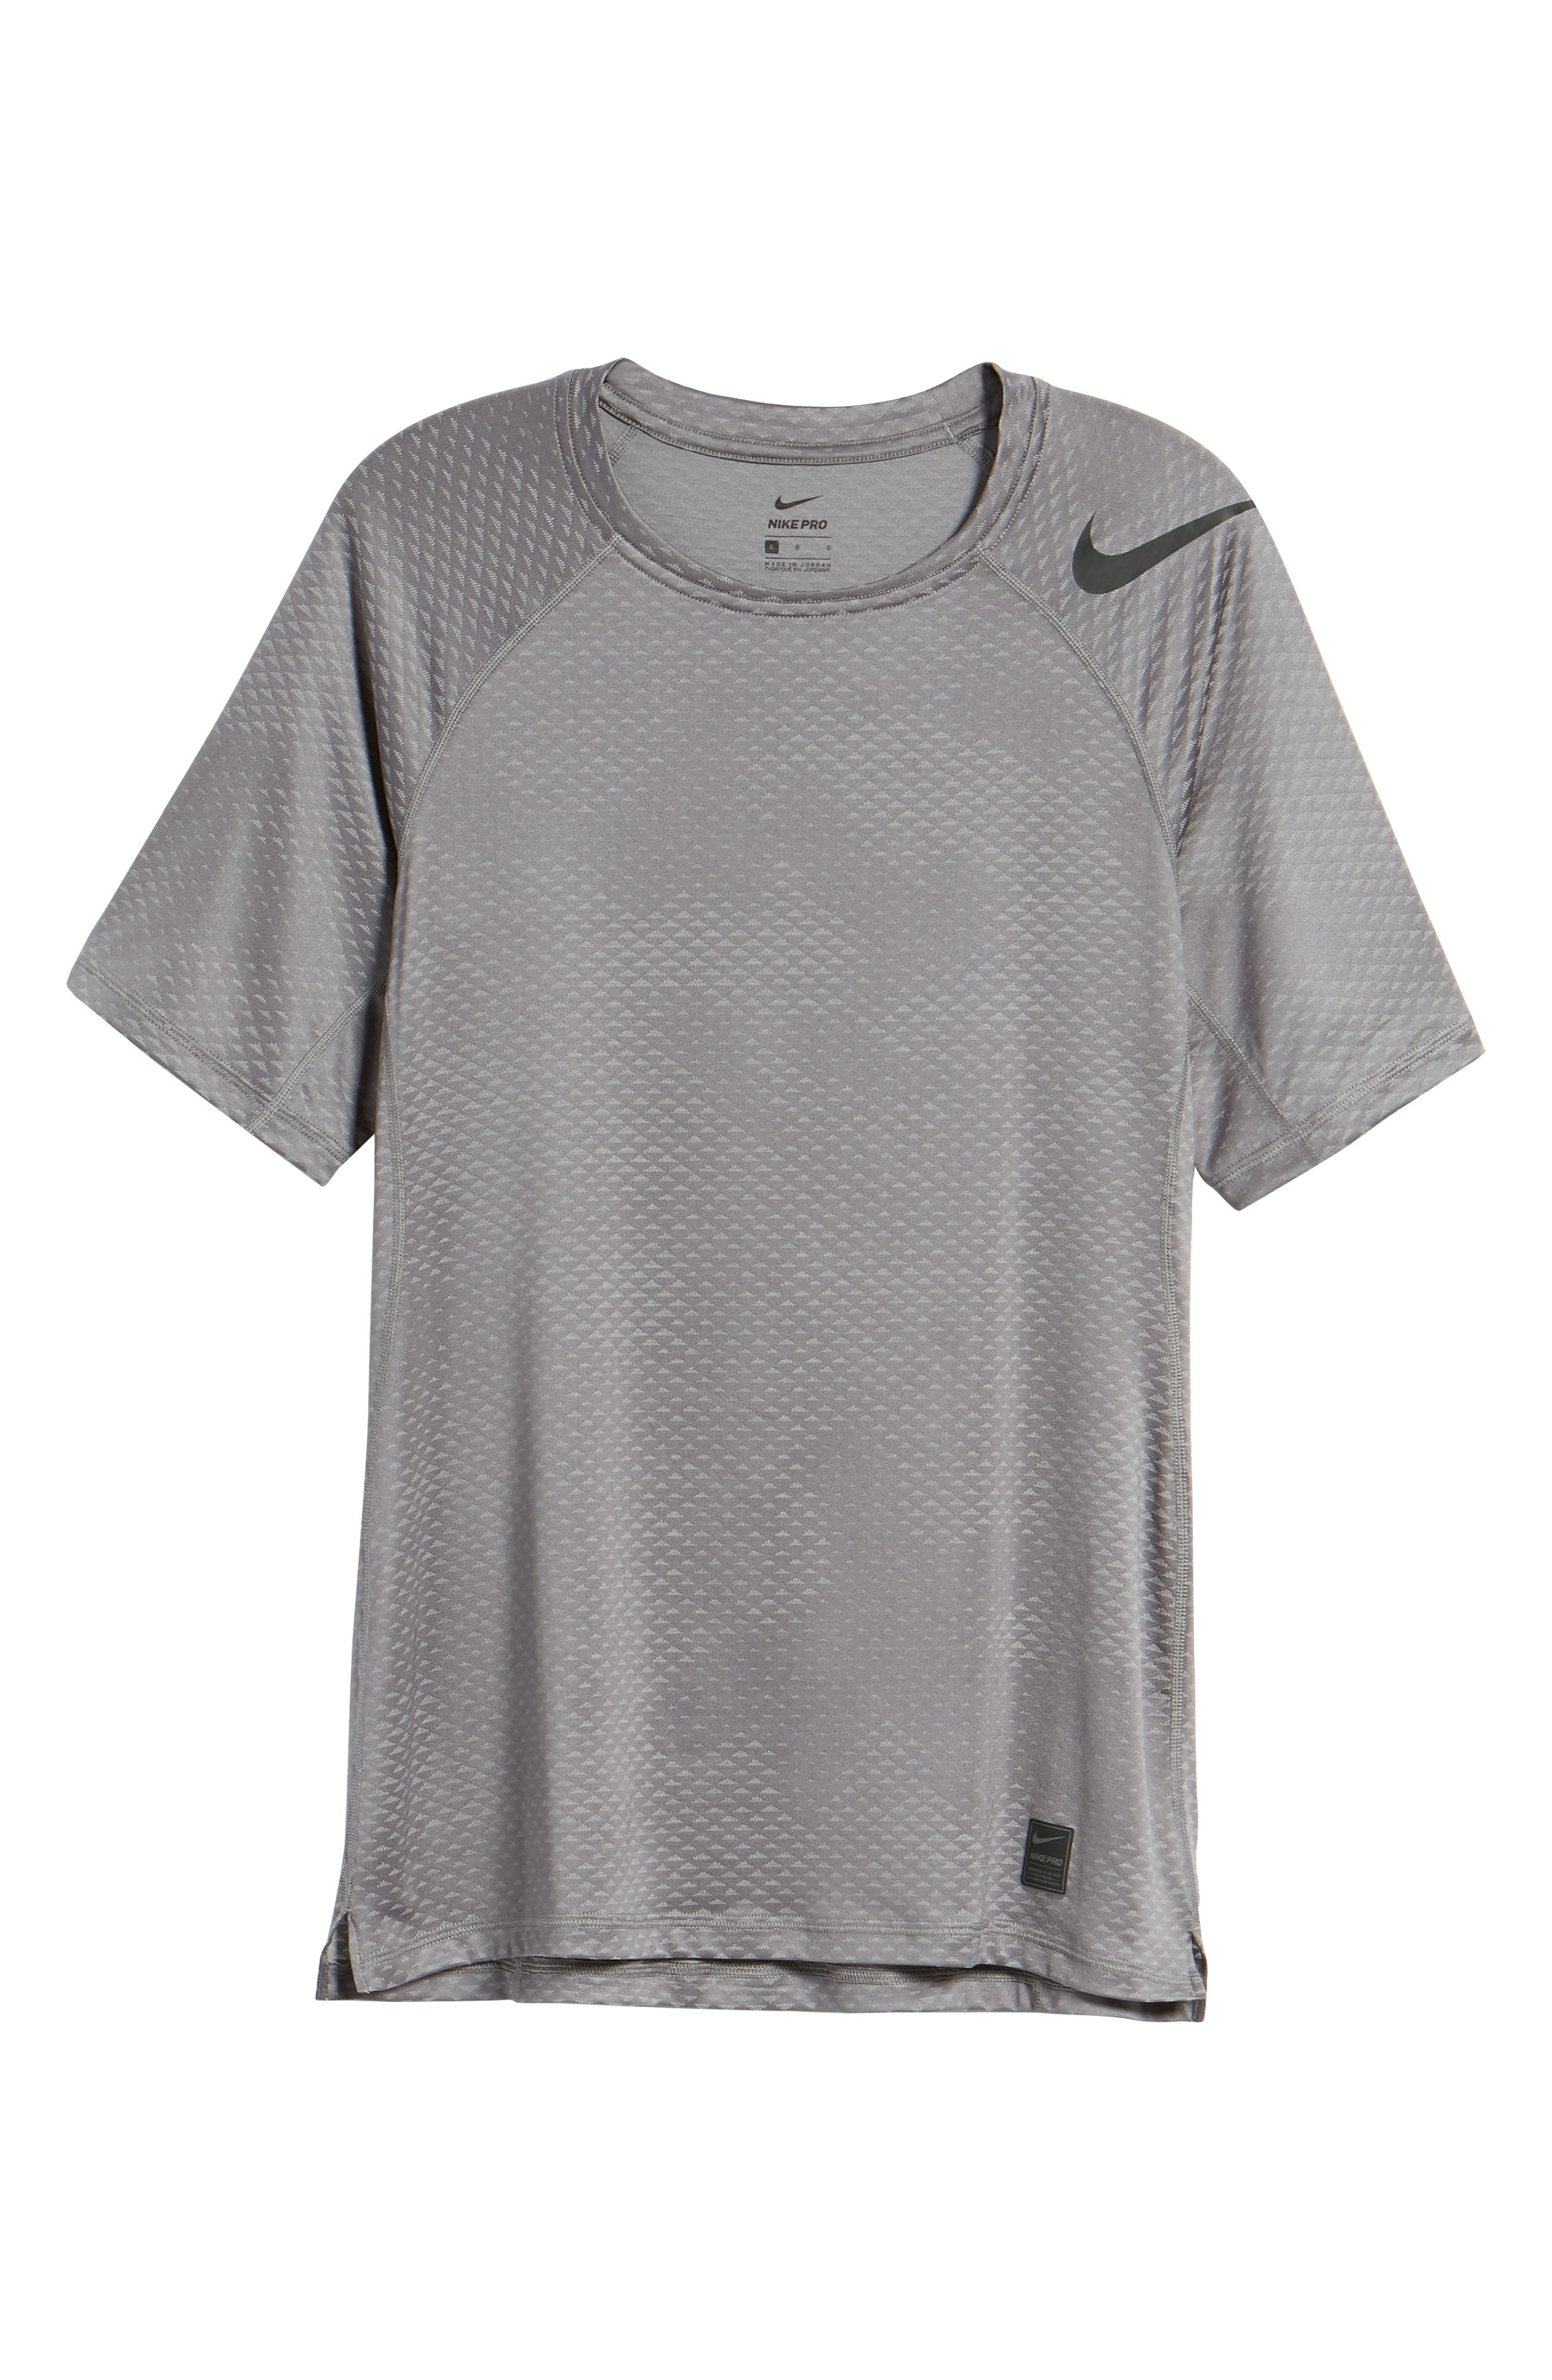 Pro HyperCool Fitted Crewneck T-Shirt,                             Alternate thumbnail 6, color,                             Atmosphere Grey/ Black